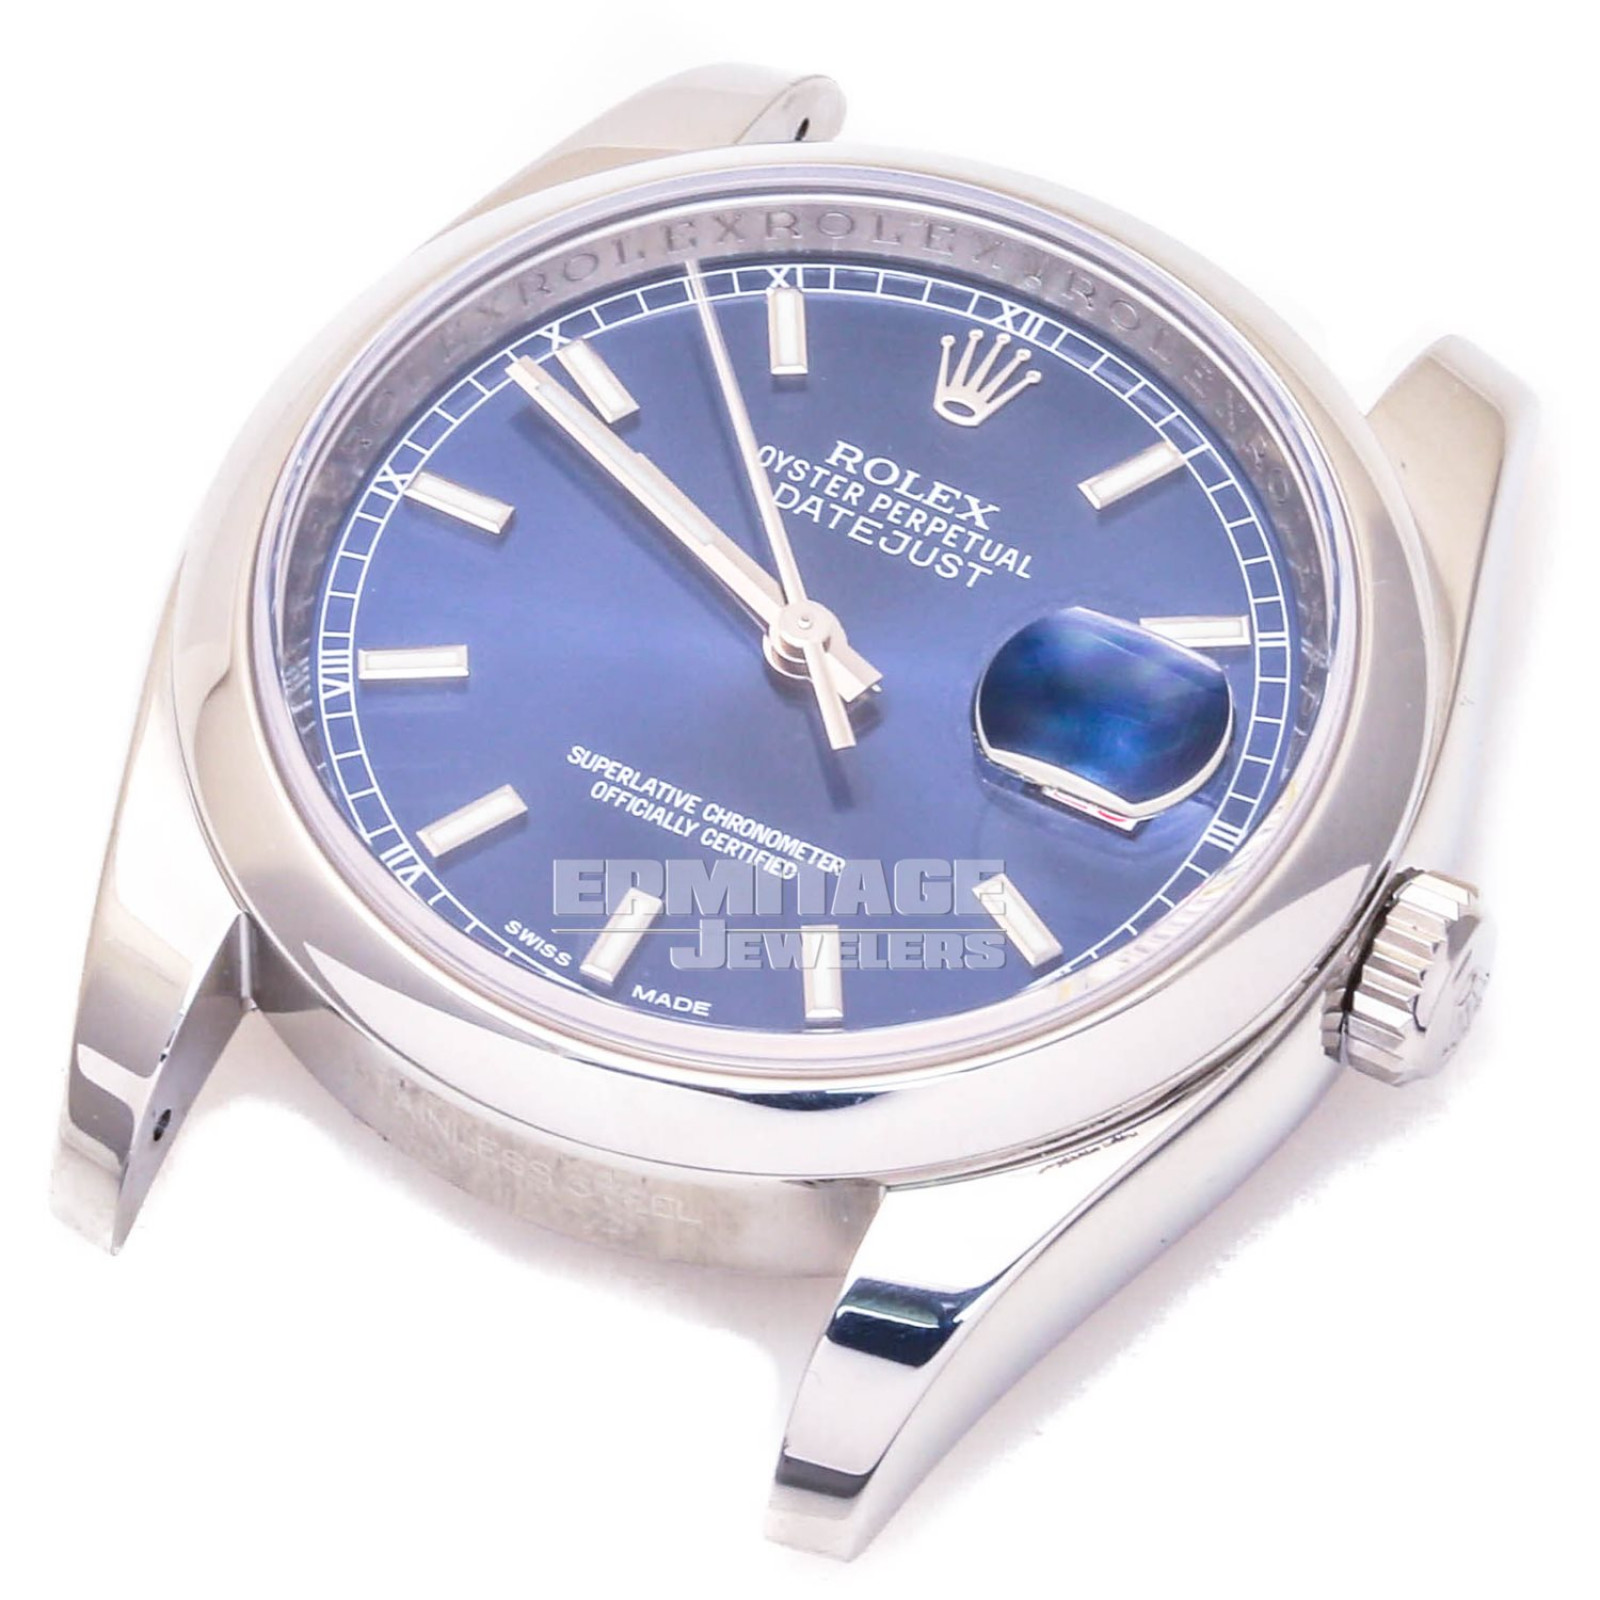 Rolex Datejust 116200 with Blue Dial